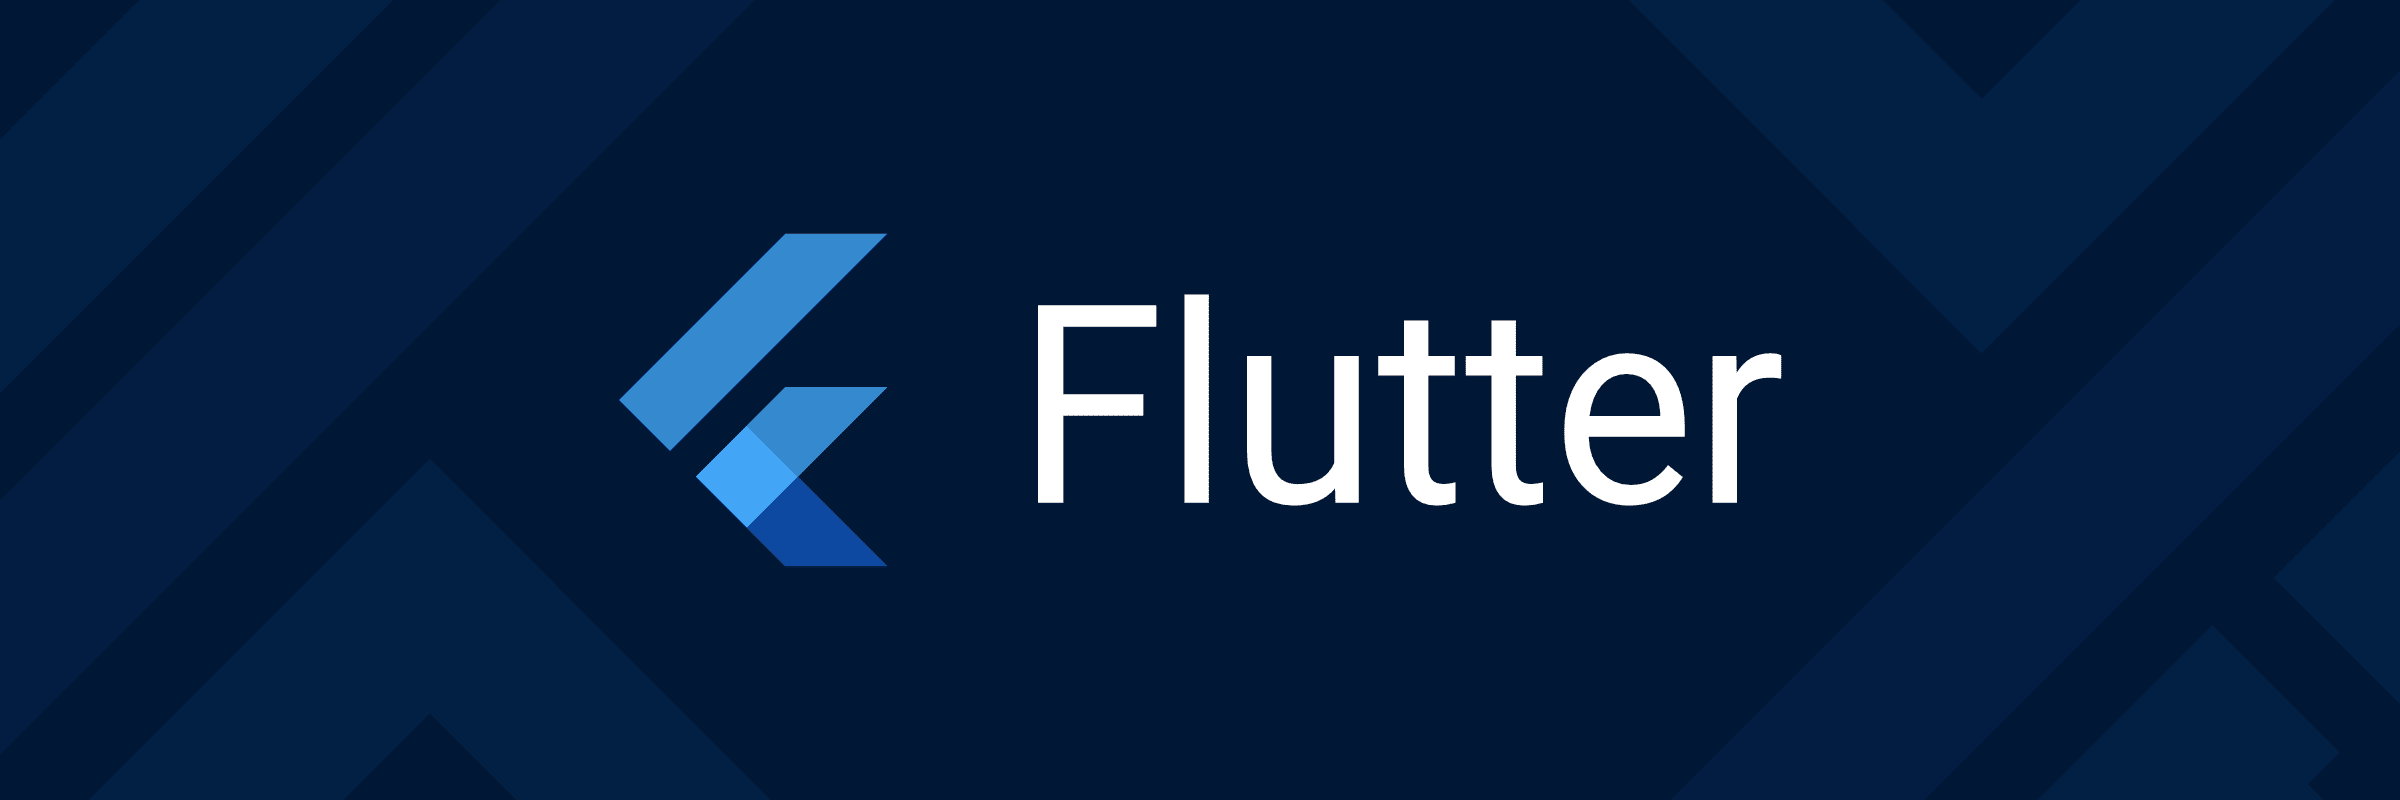 Introducing new action: Flutter